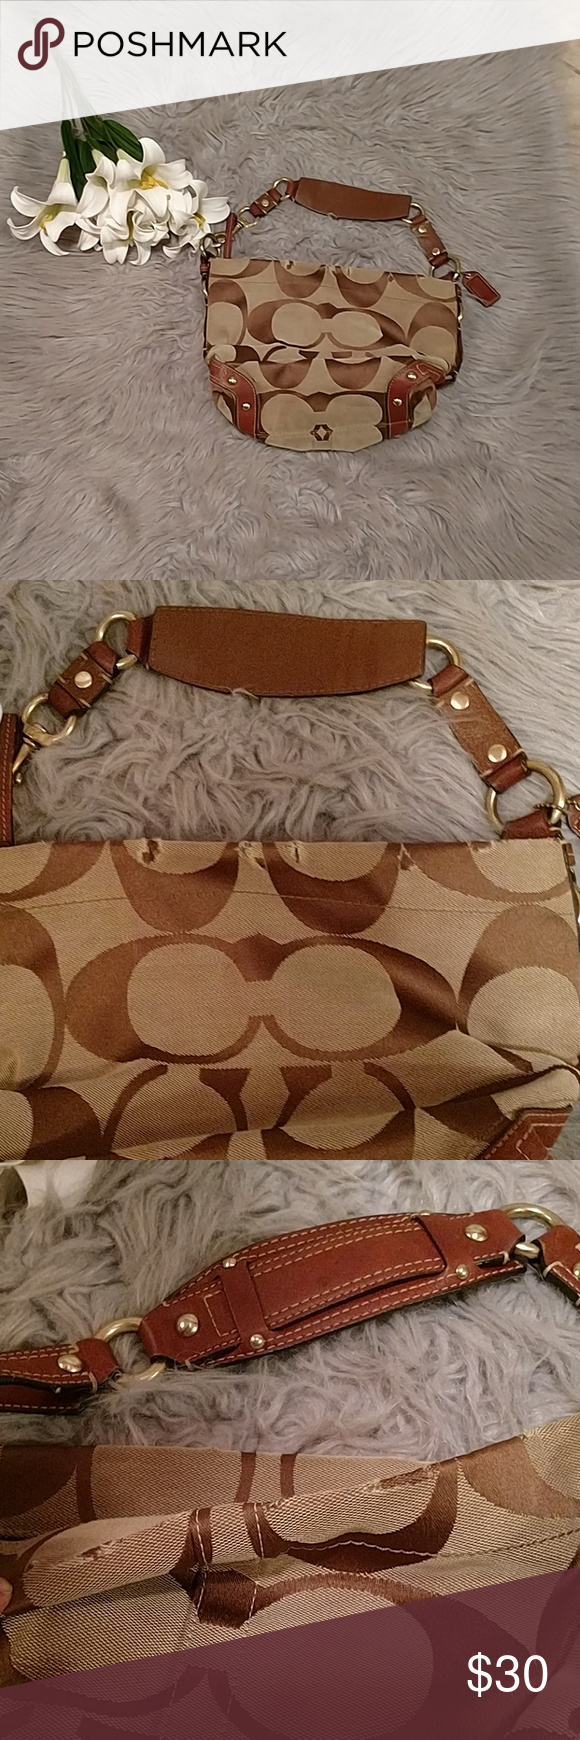 Pictures shown It has some wear by the zipper but overall good condition.  Good project for some one that repair purses.Style number L0673 10619 Coach  ... cc0c26f8b0